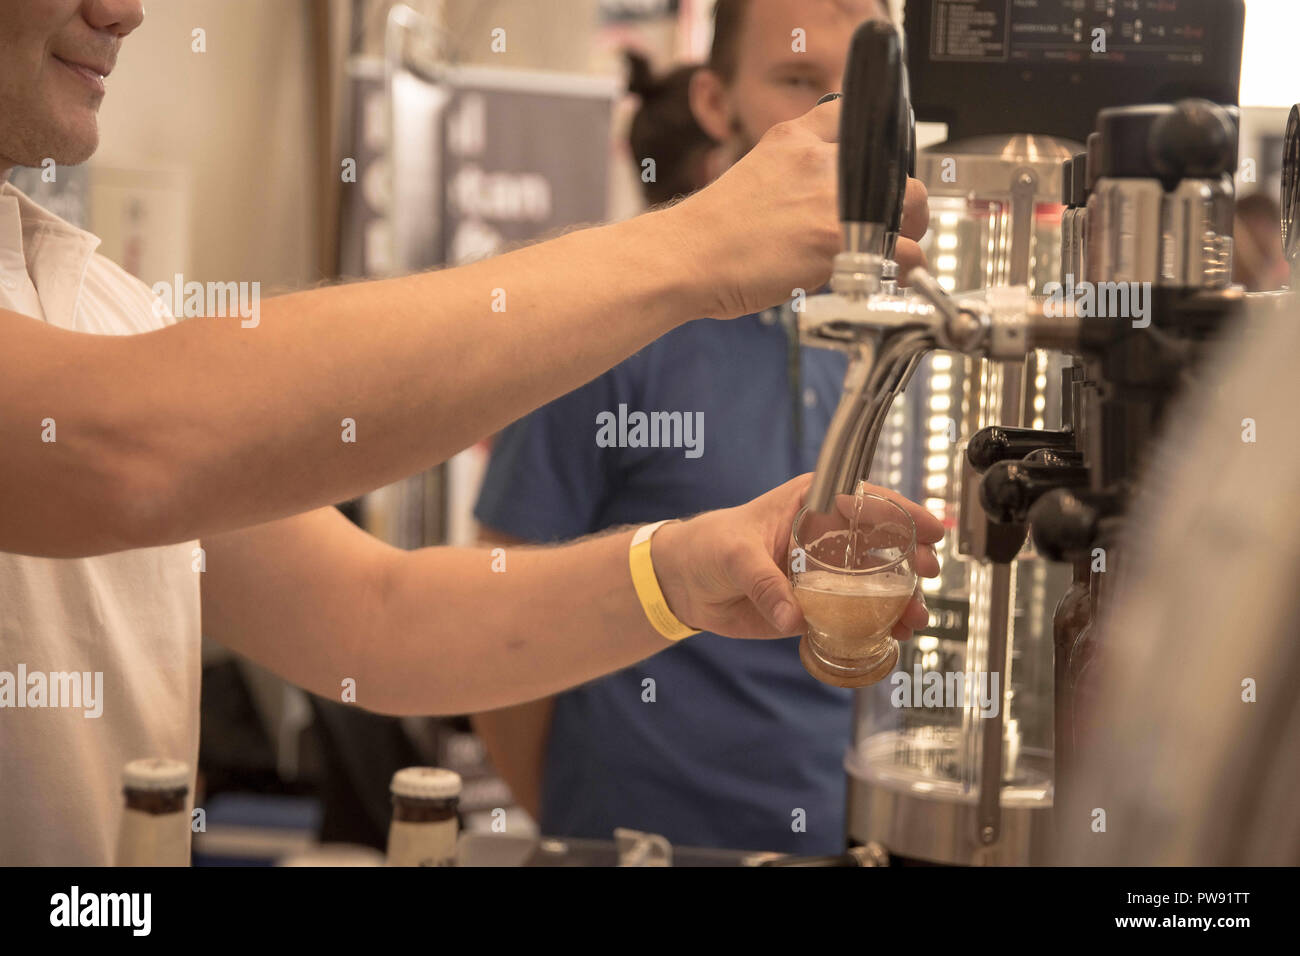 Athens, Greece. 13th Oct, 2018. A man seen pouring beer into a glass during the exhibition.The 5th Zythognosia Exhibition, people get a chance during the exhibition to taste multiple brews and premium beers from different brands and companies like Levante for Zante Lager, Asylum for Asylum saison, Mikonu for Mikonu Pale Ale, Deals for Fischer, Samichlaus and Cava di patsi for Flaros Session Ale in Zappeion Megaron in Athens. Credit: Nikolas Joao Kokovlis/SOPA Images/ZUMA Wire/Alamy Live News - Stock Image